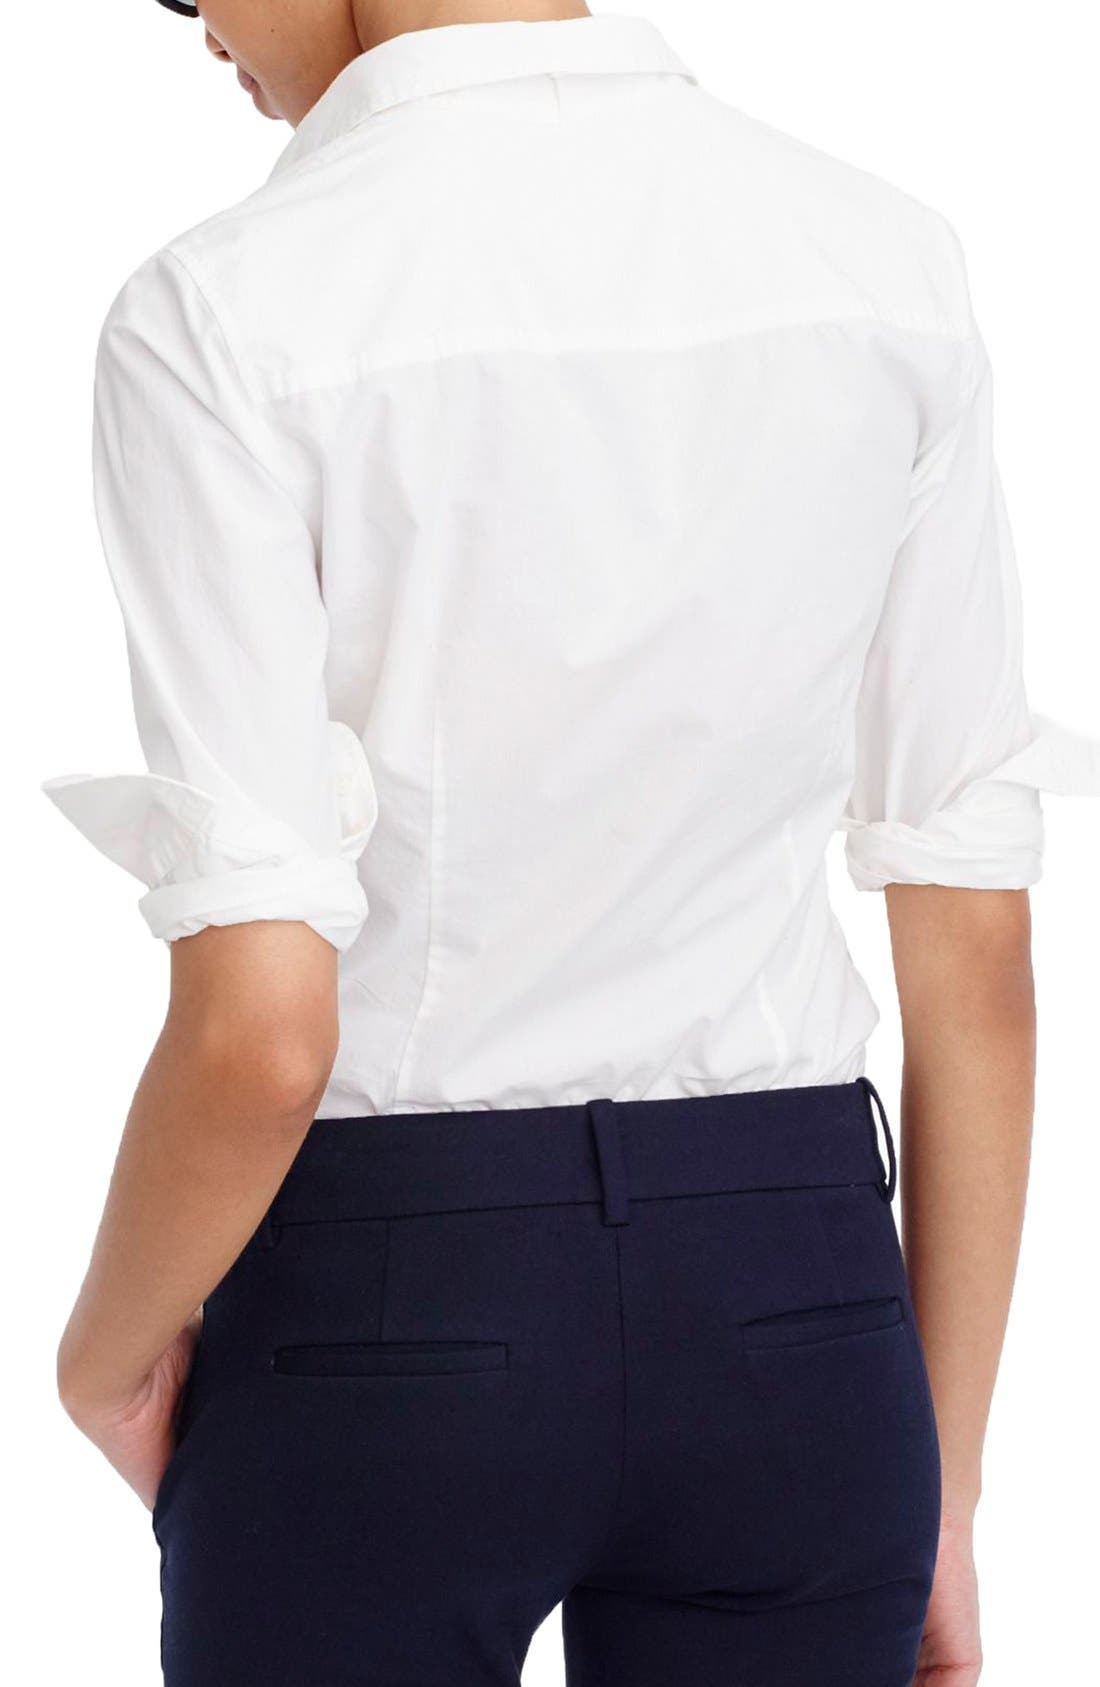 J.Crew New Perfect Cotton Poplin Shirt,                             Alternate thumbnail 3, color,                             White